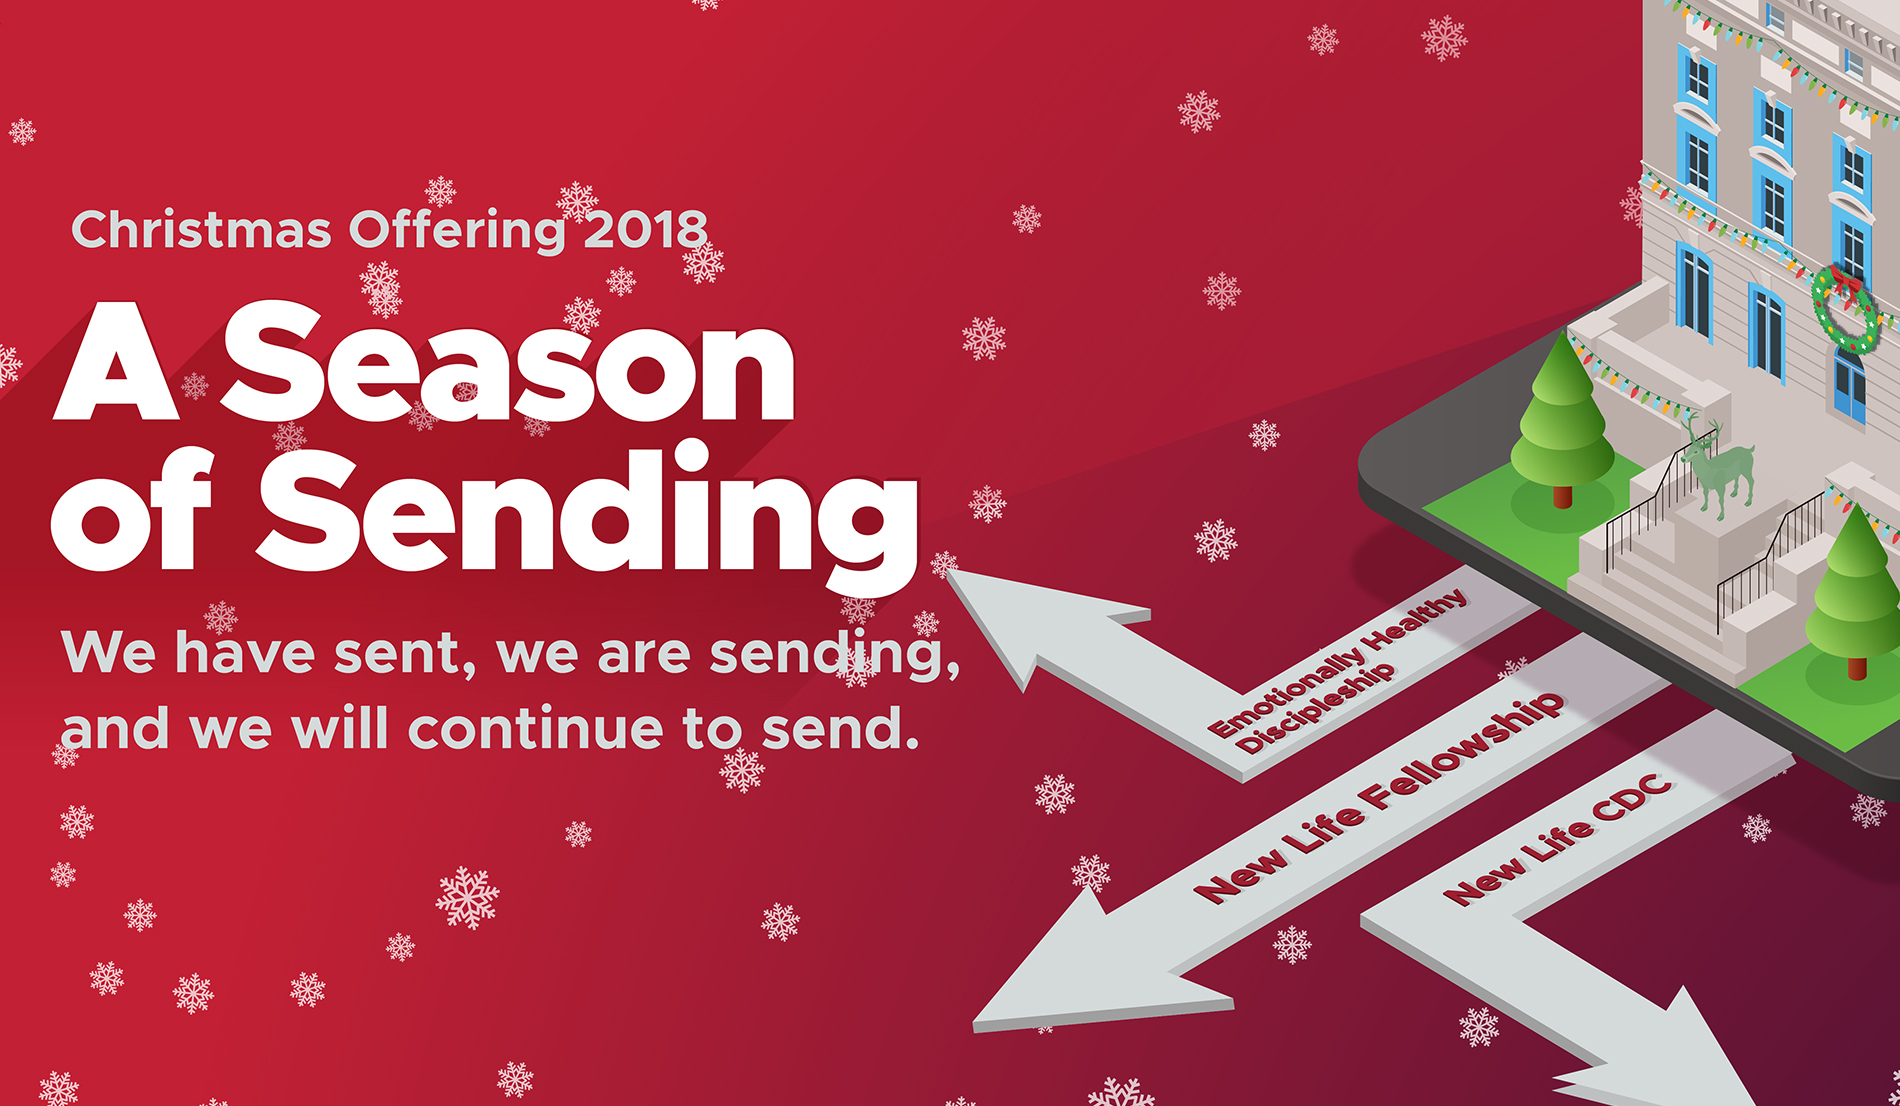 christmasofferingheader